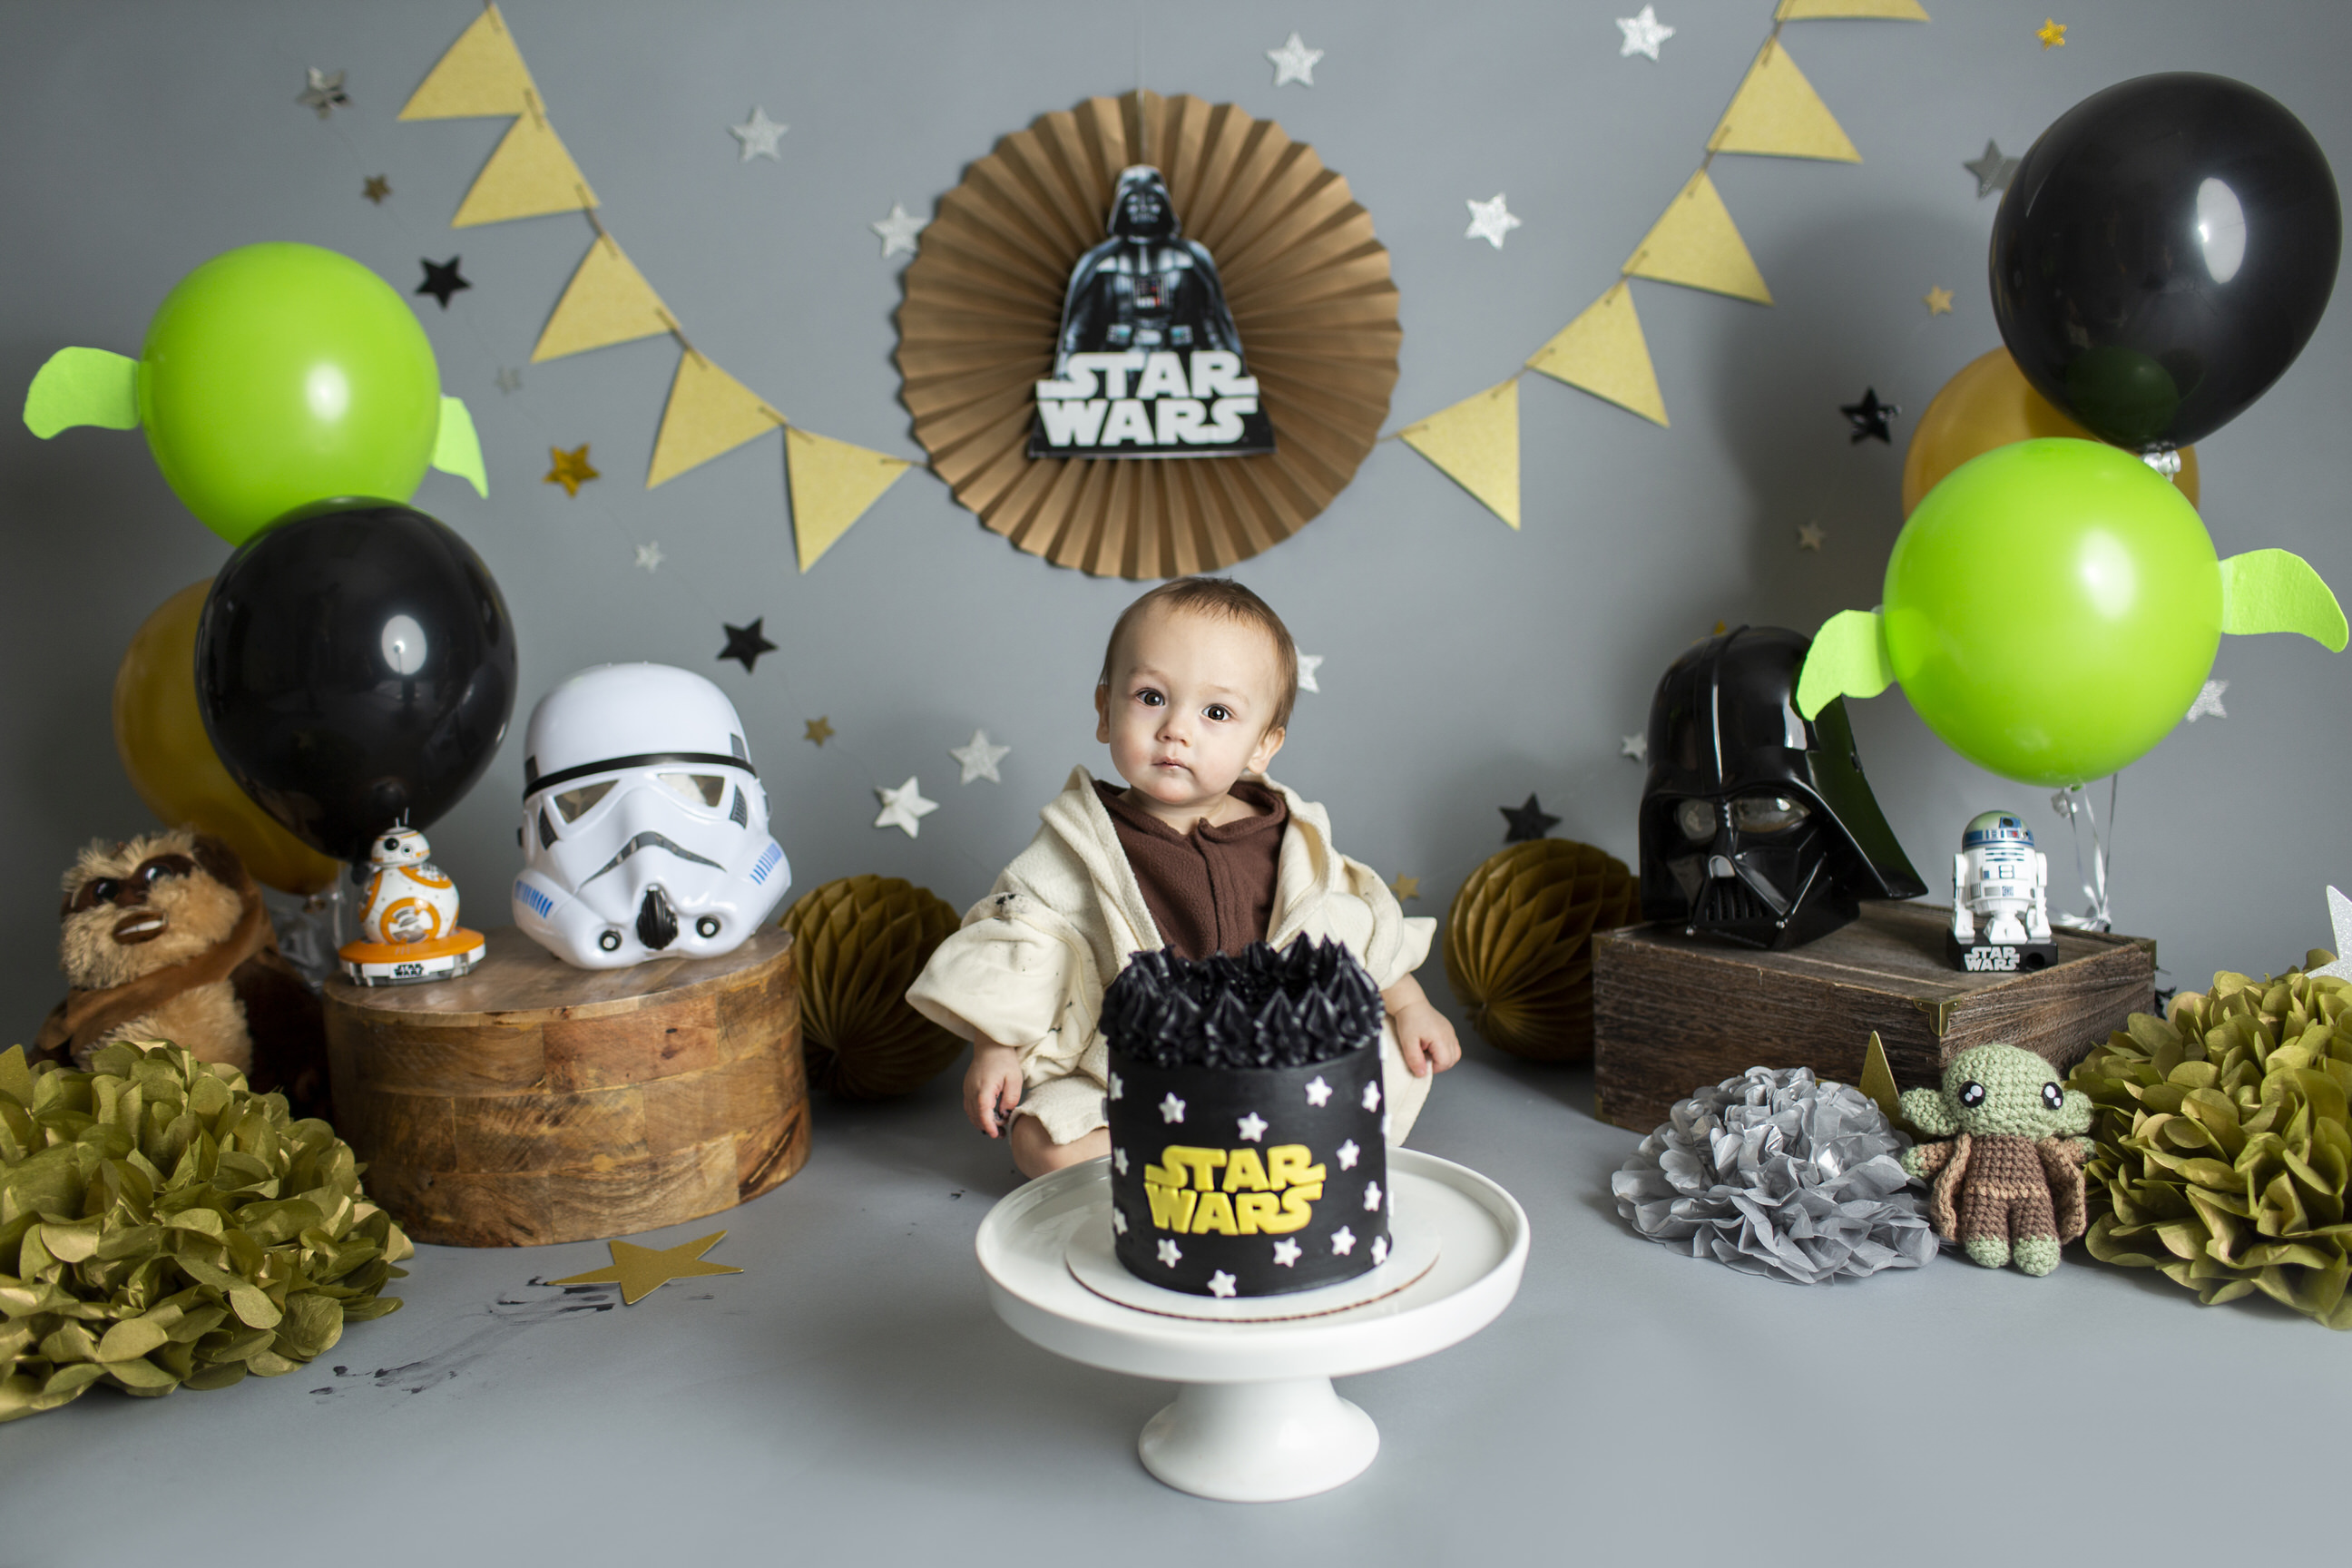 Star Wars Cake Smash